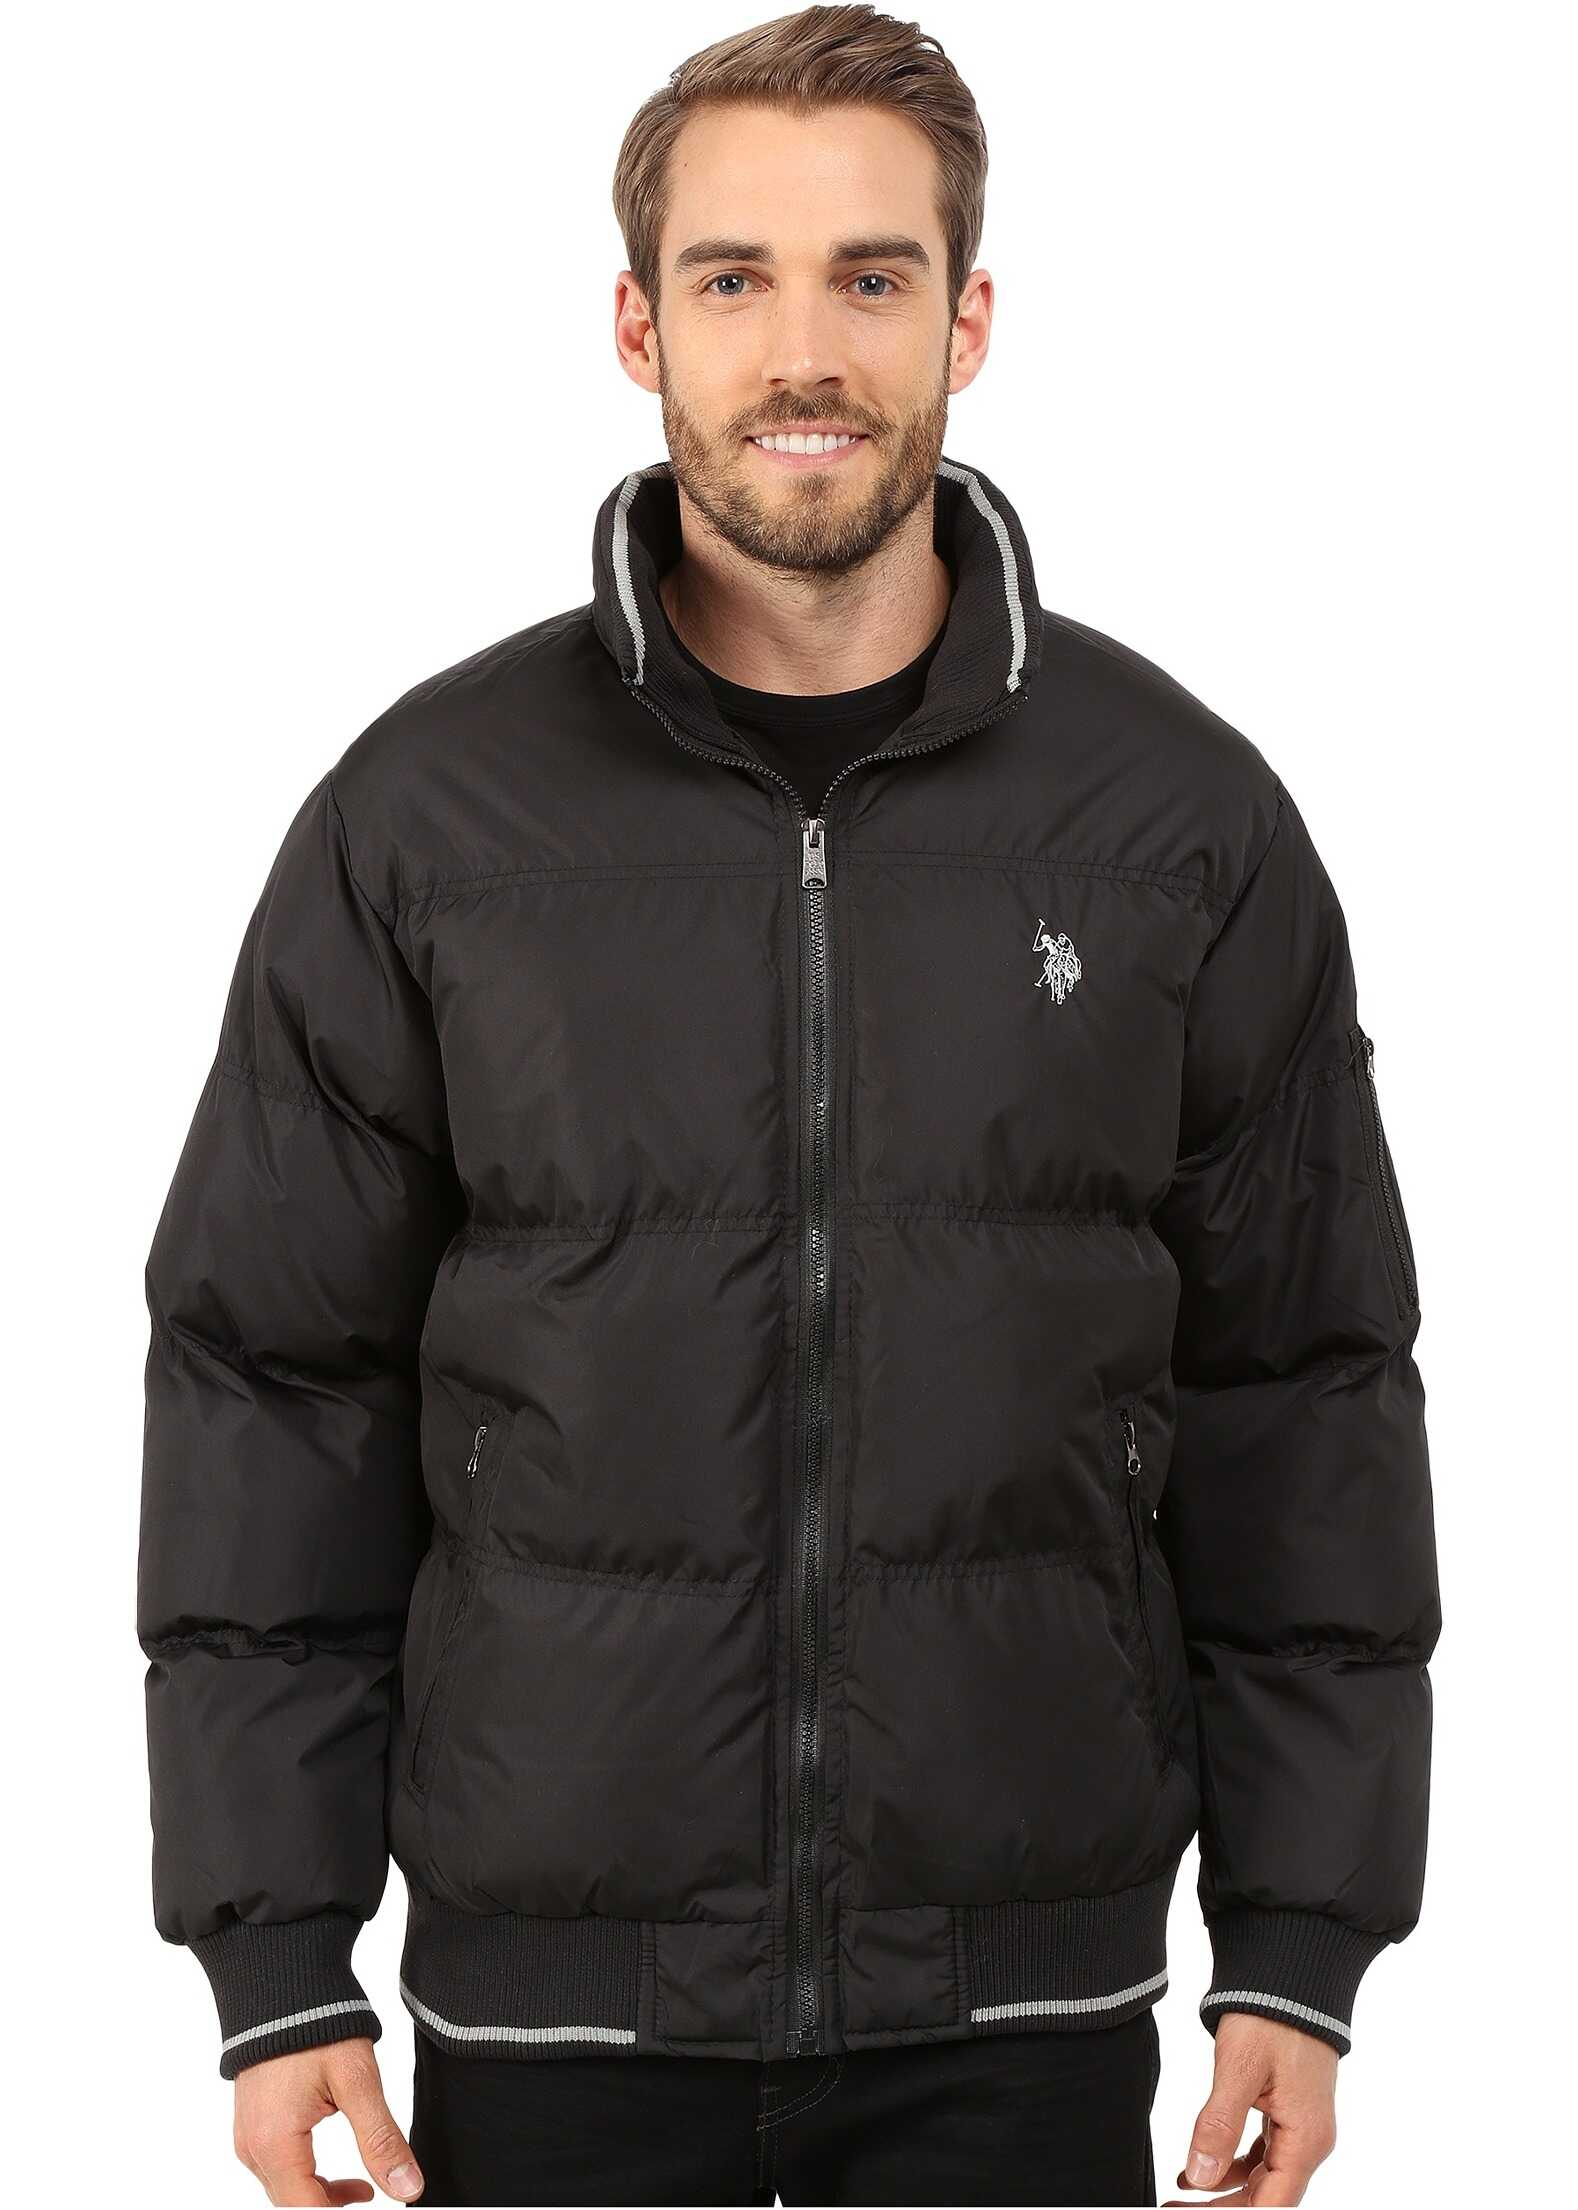 U.S. POLO ASSN. Puffer Jacket with Striped Rib Knit Collar Black